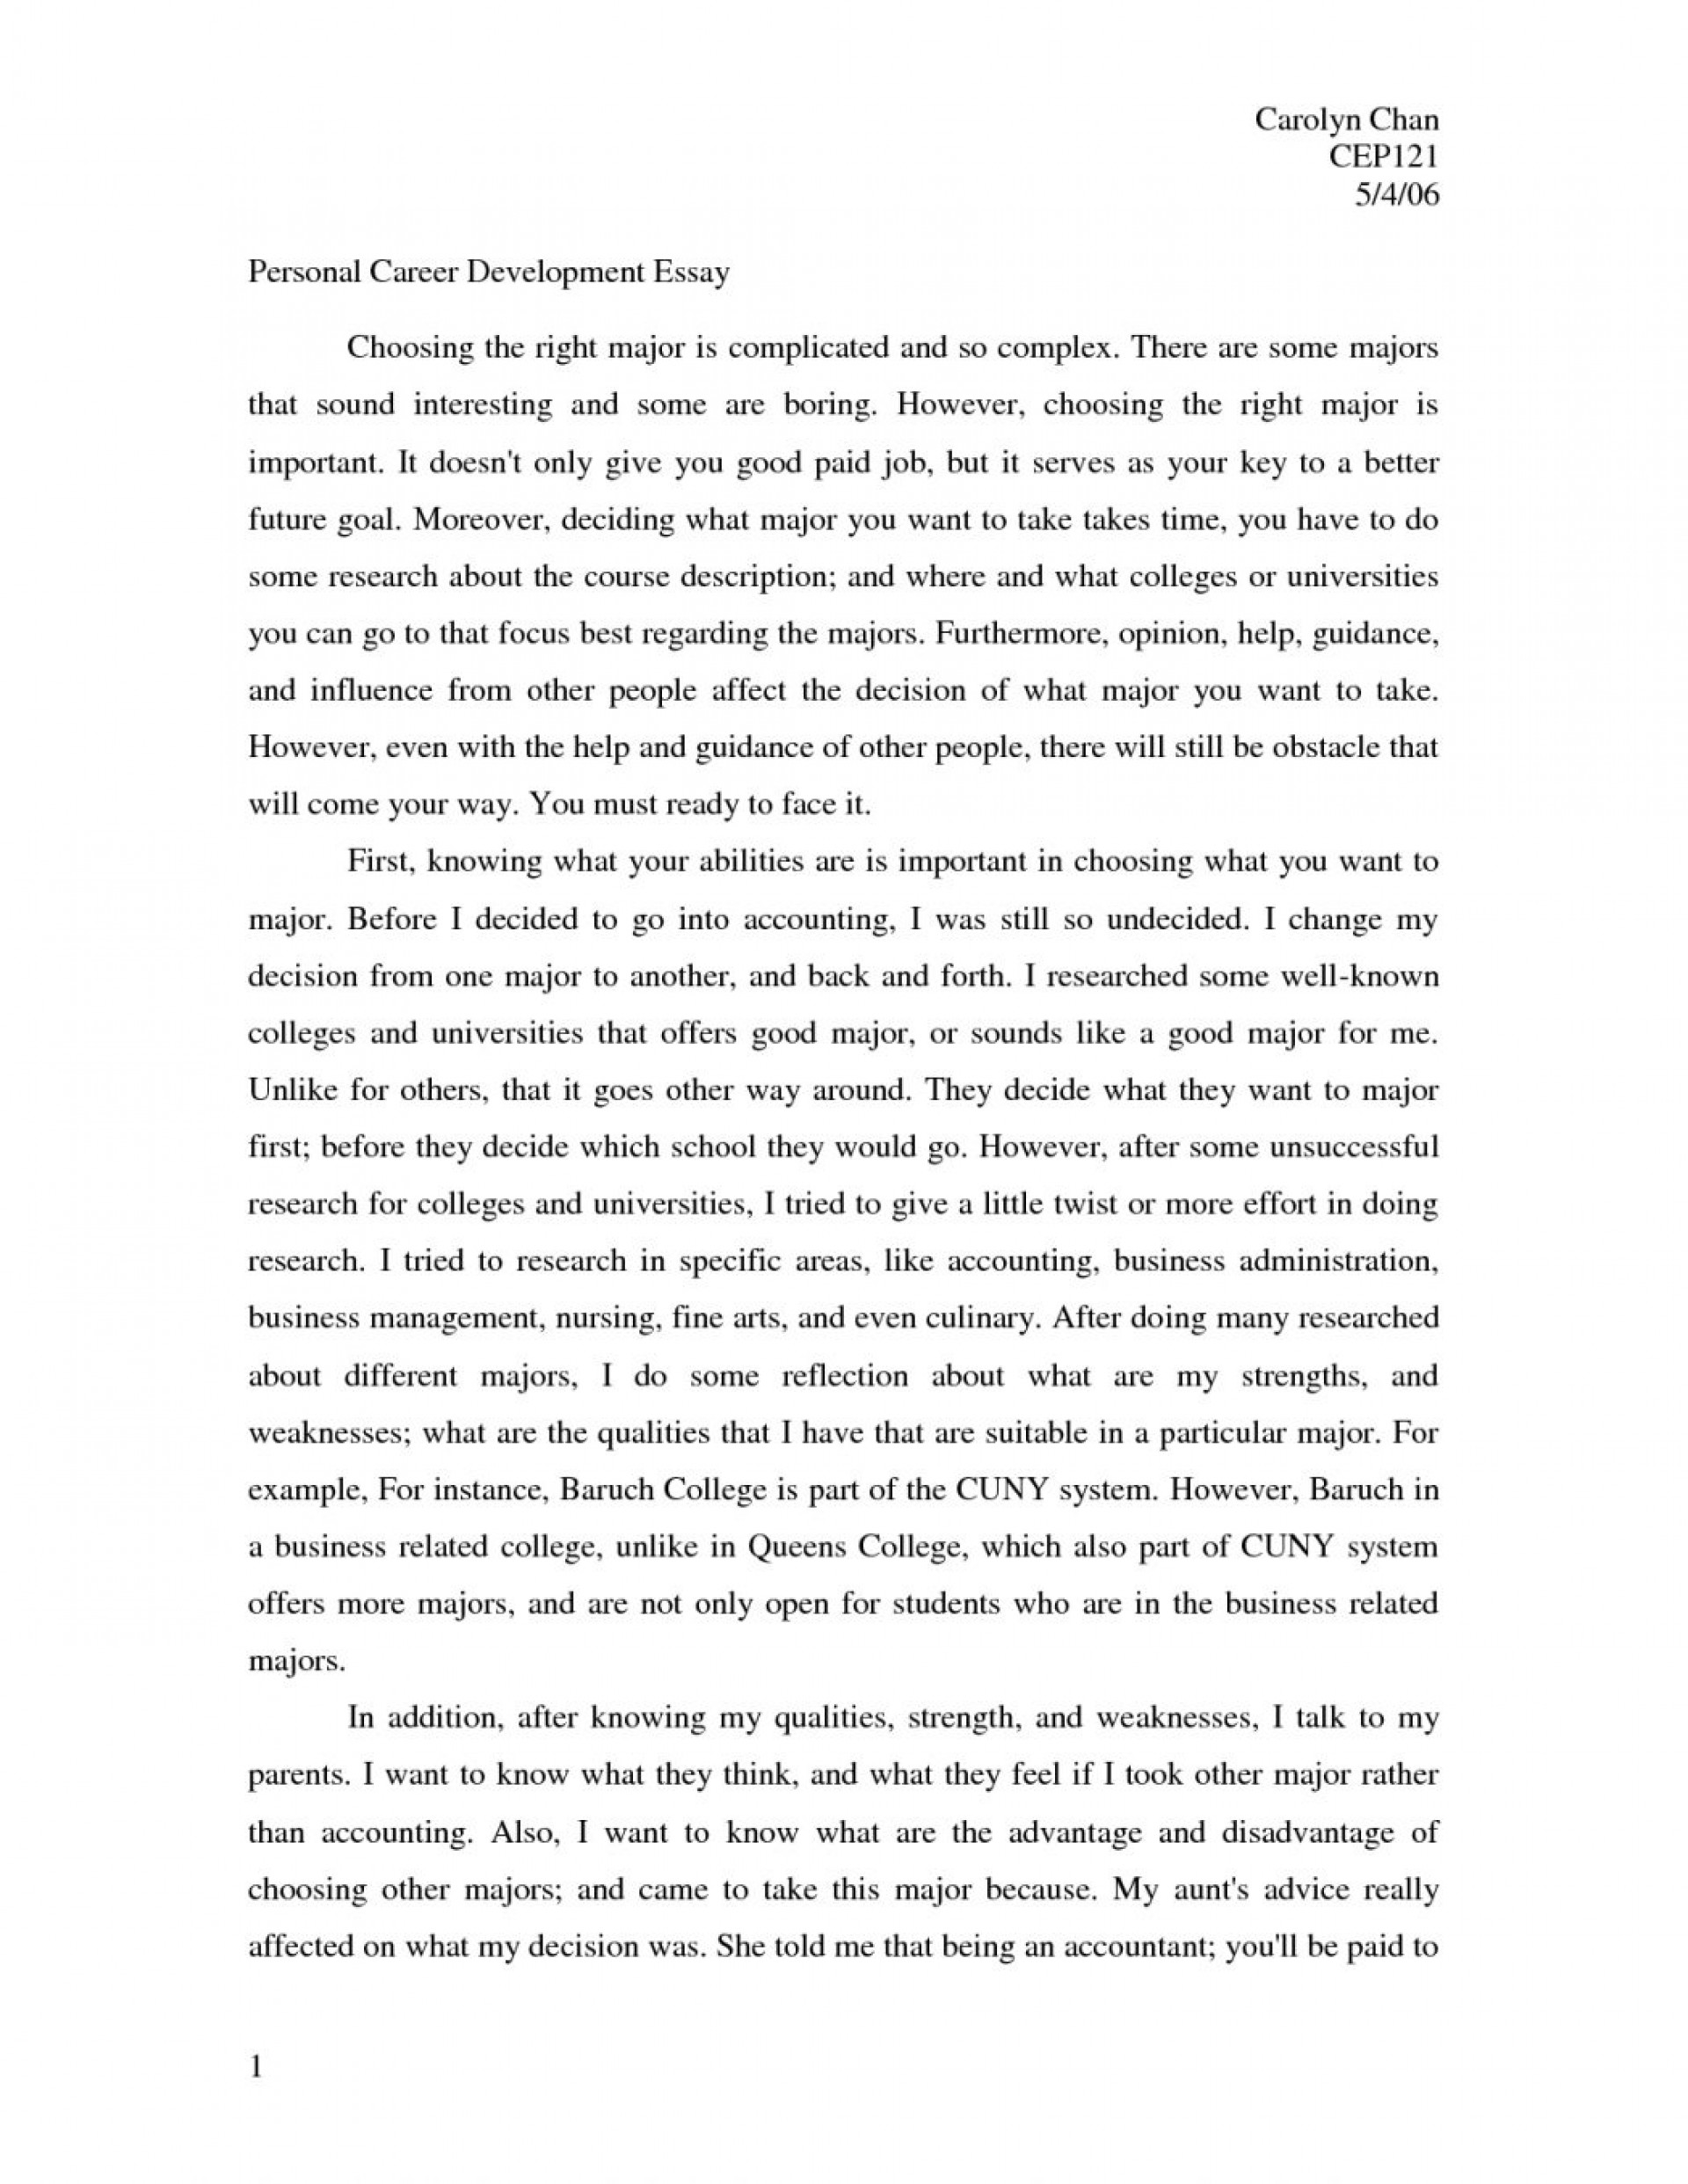 014 Essay About Goals Scholarships Career Printables Corner Educational And Shawn Weatherly Rega Pdf 1048x1356 Awesome In High School After Life 1920